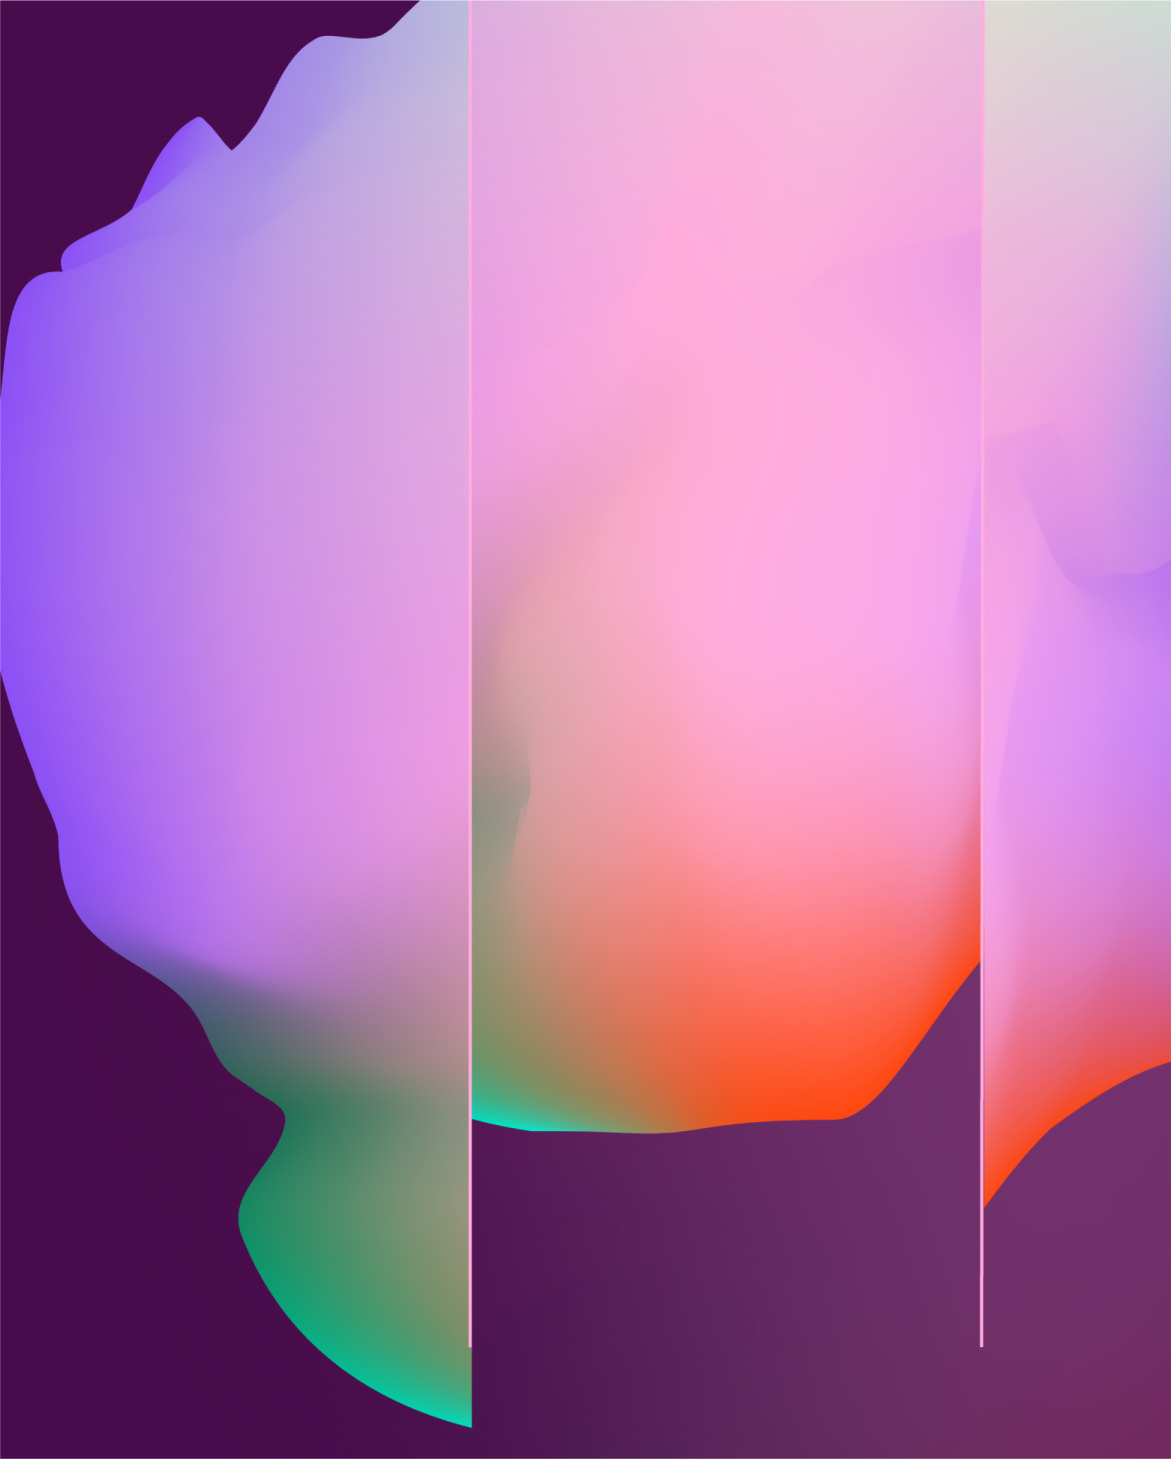 Abstract background shape